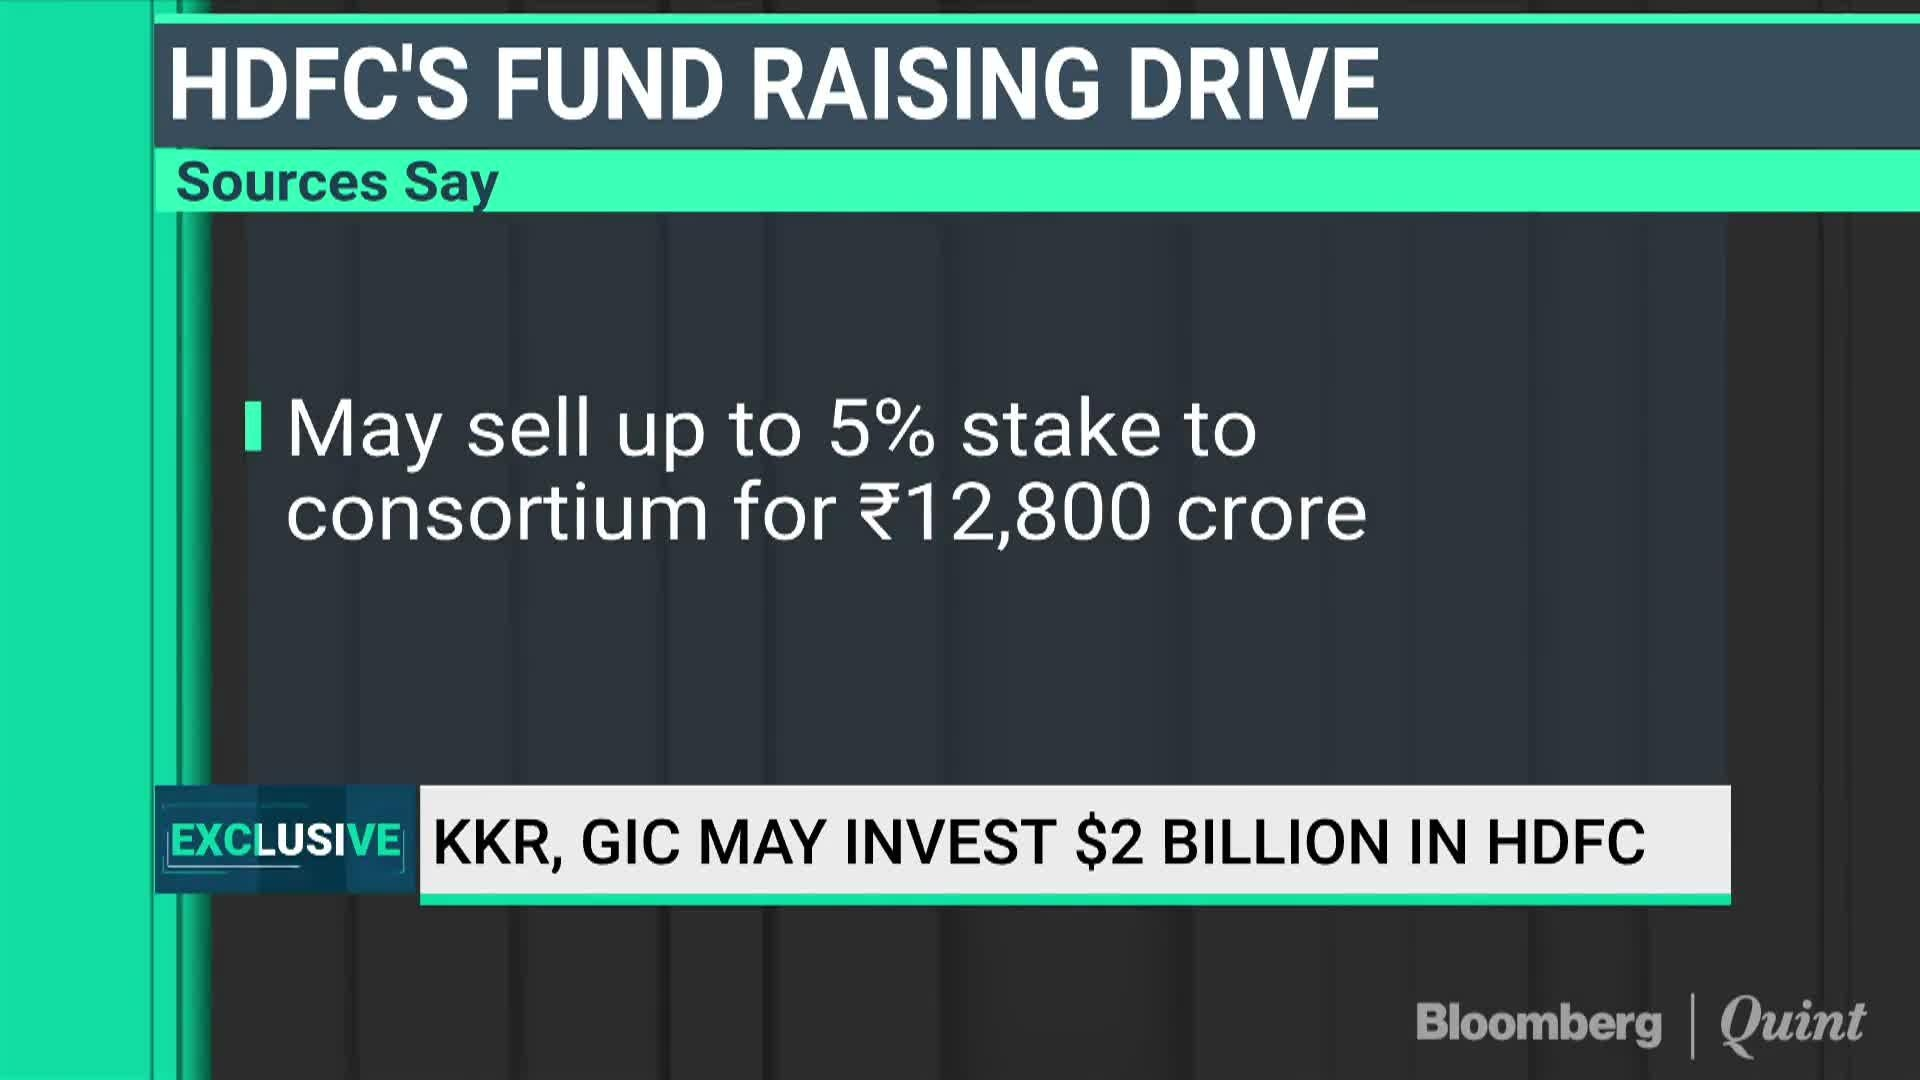 KKR, GIC May Invest $2 Billion In HDFC - Bloomberg Quint